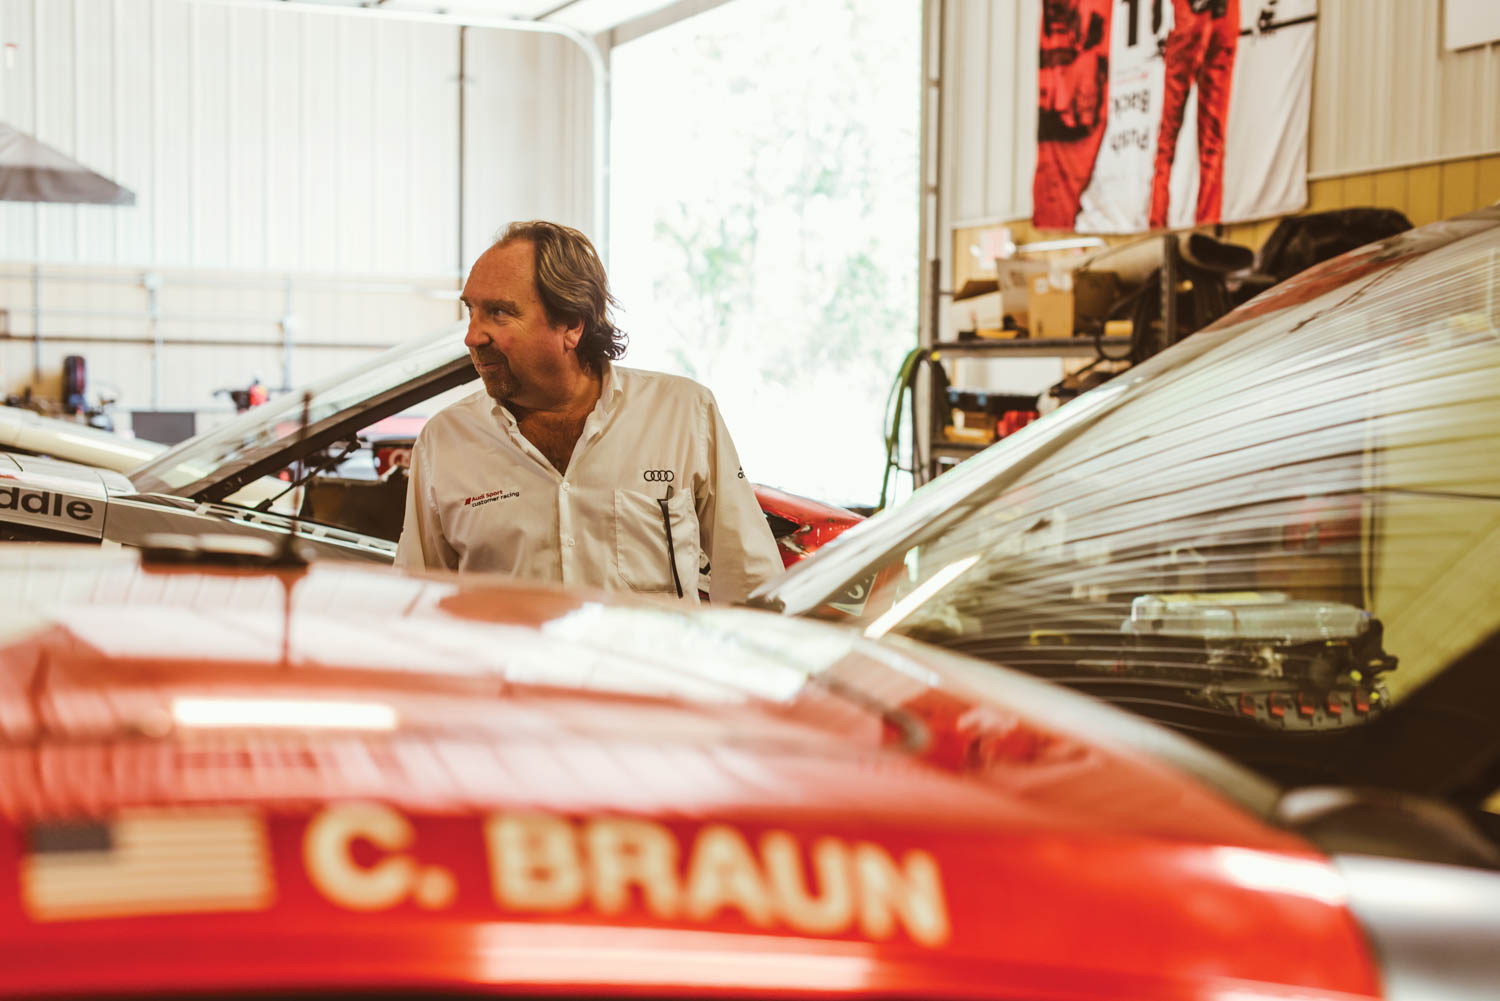 In his rural Ohio shop, Kettler wrenches on race cars, machines custom parts, and shares the wisdom he learned from Le Mans with the next generation of mechanics.